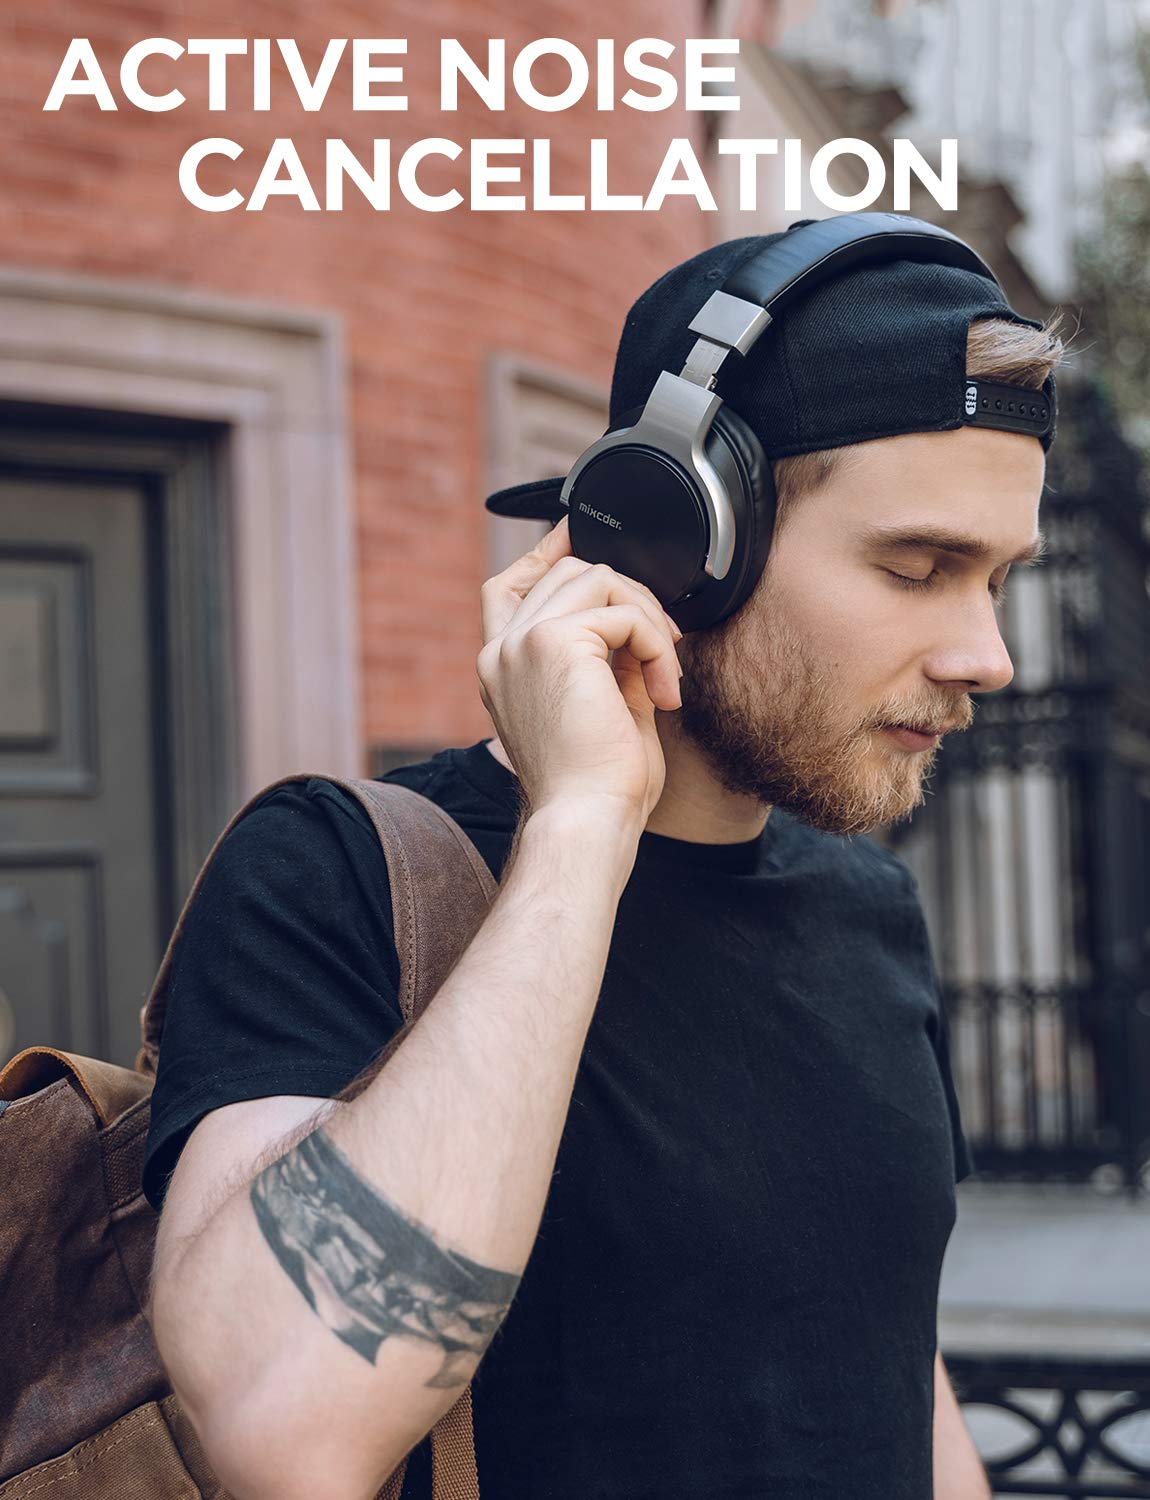 Mixcder E7 Active Noise Cancelling Headphones, Wireless Bluetooth Headphones Over Ear with Microphone, Hi-Fi Stereo Headset Deep Bass, Comfortable Protein Earpads for PC Cell Phones TV